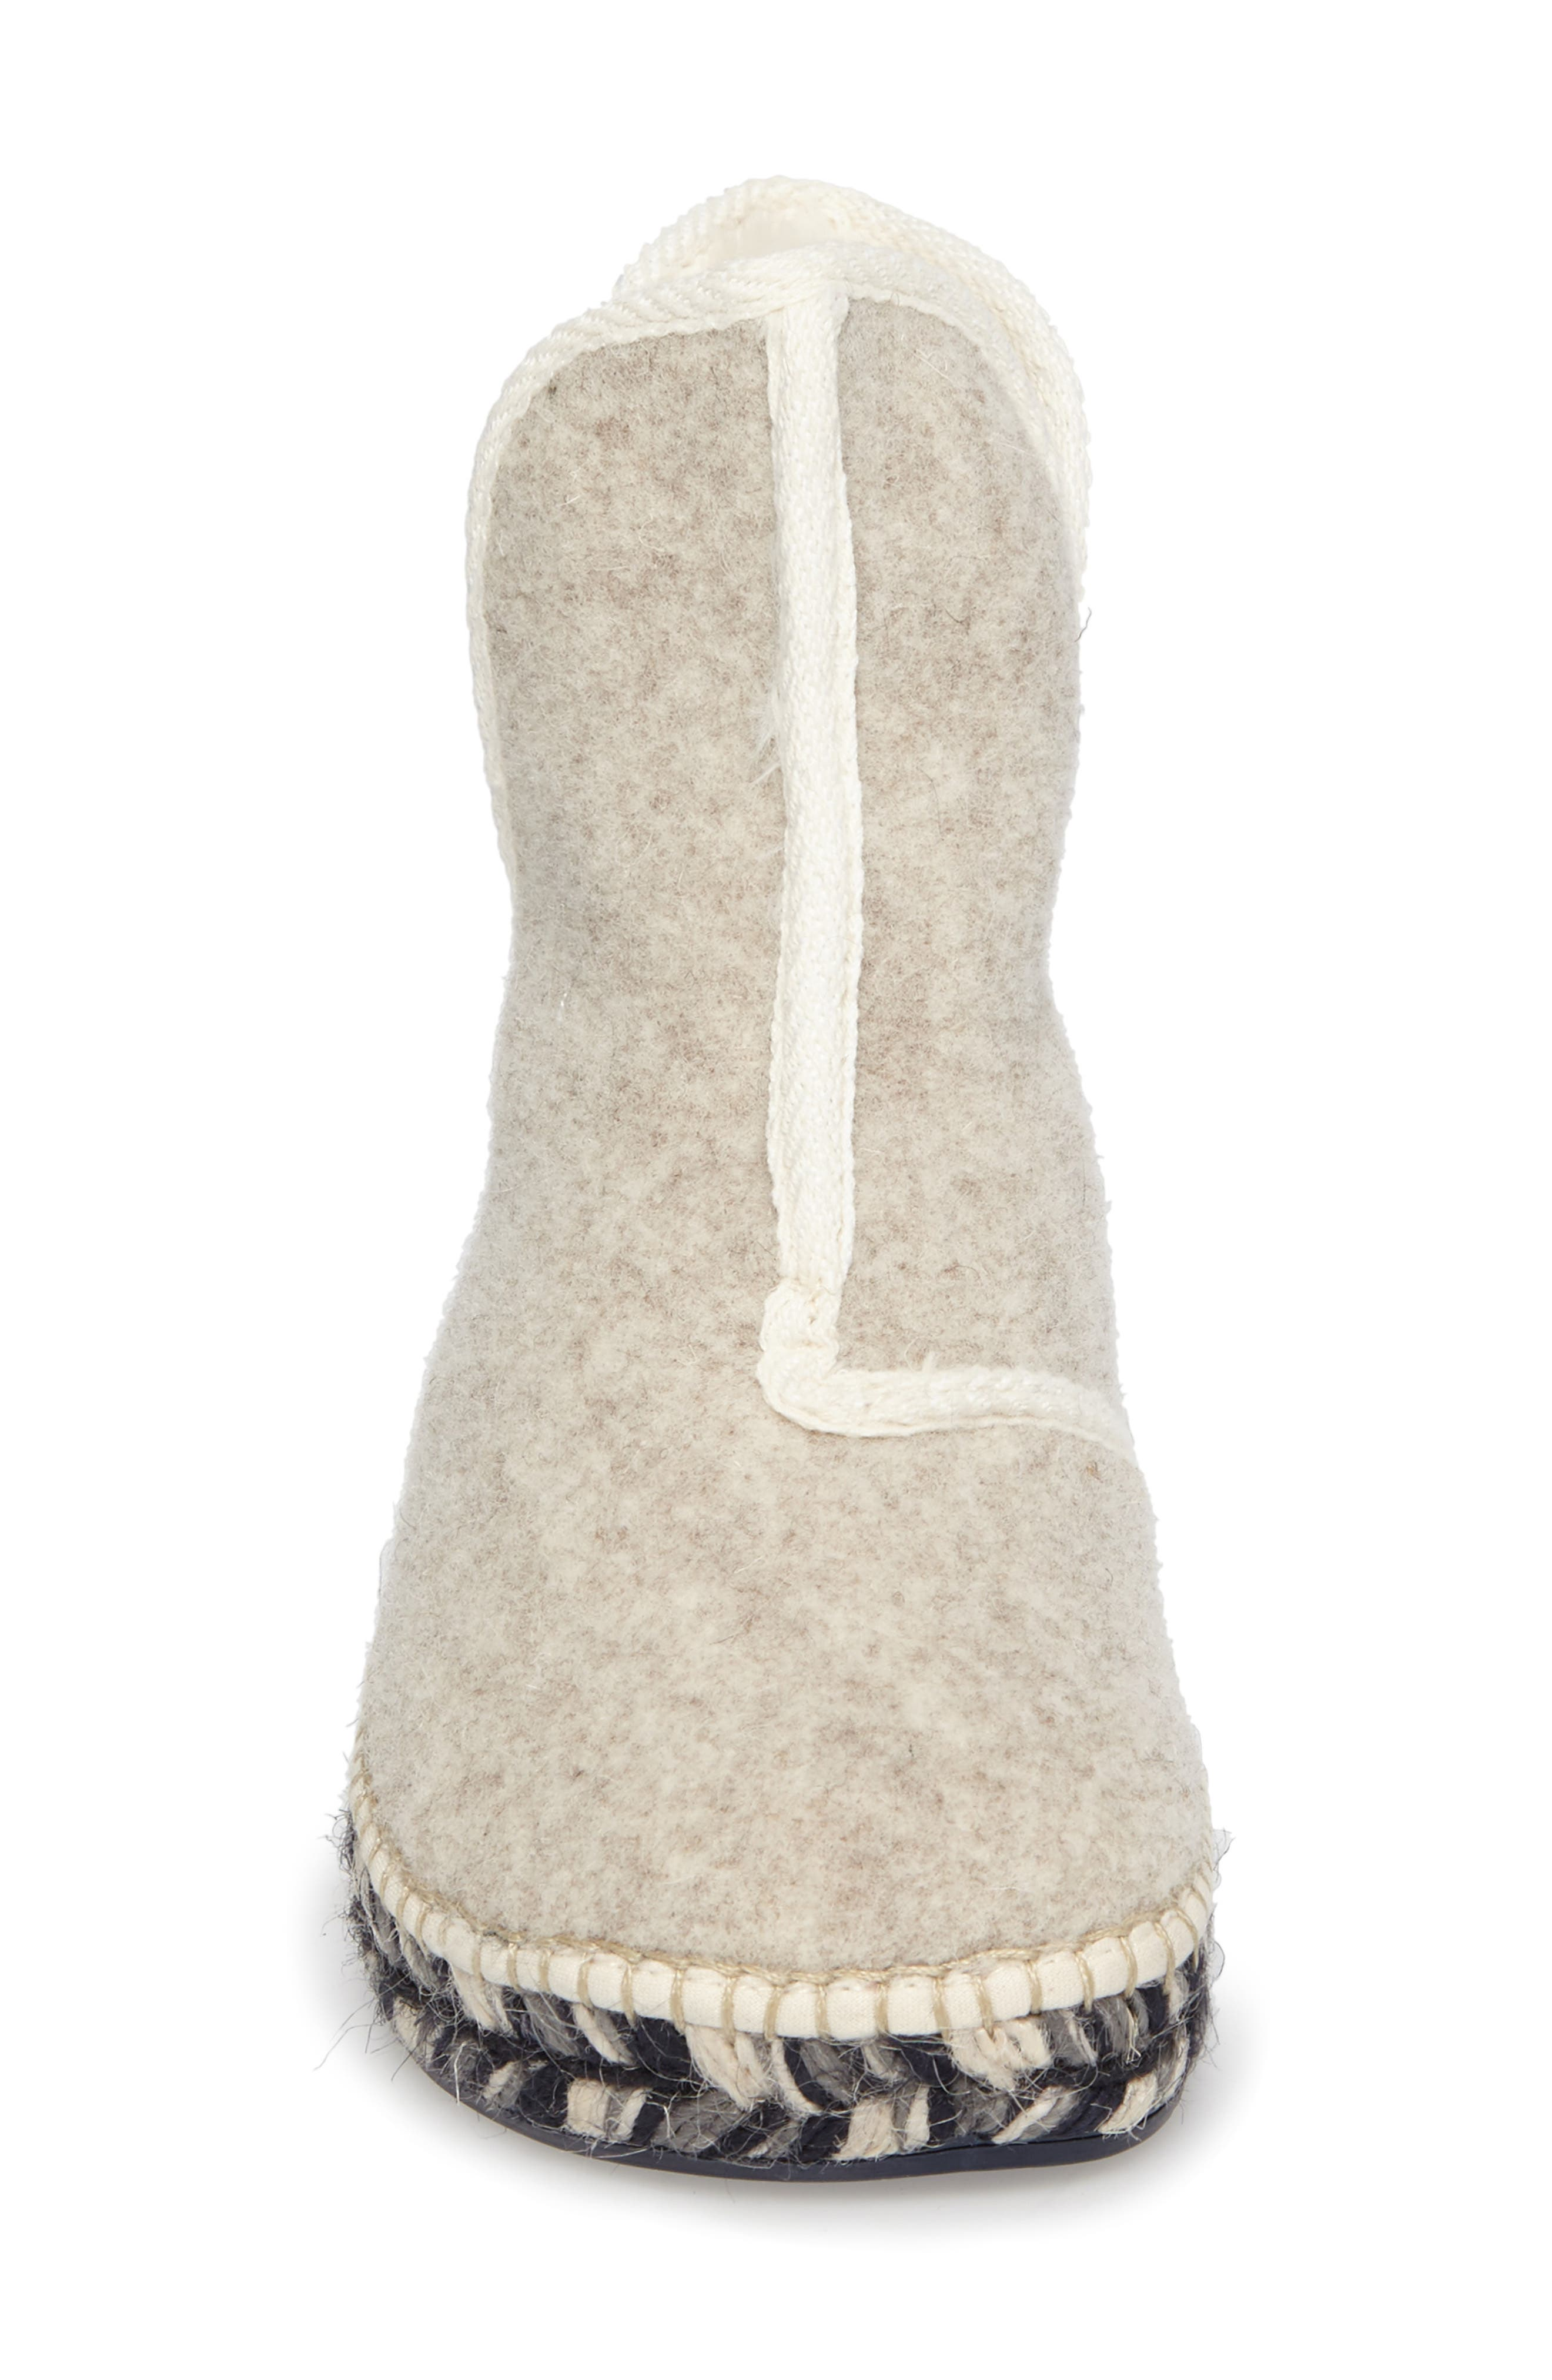 Espadrille Platform Bootie with Faux Fur Lining,                             Alternate thumbnail 4, color,                             ECRU FELT